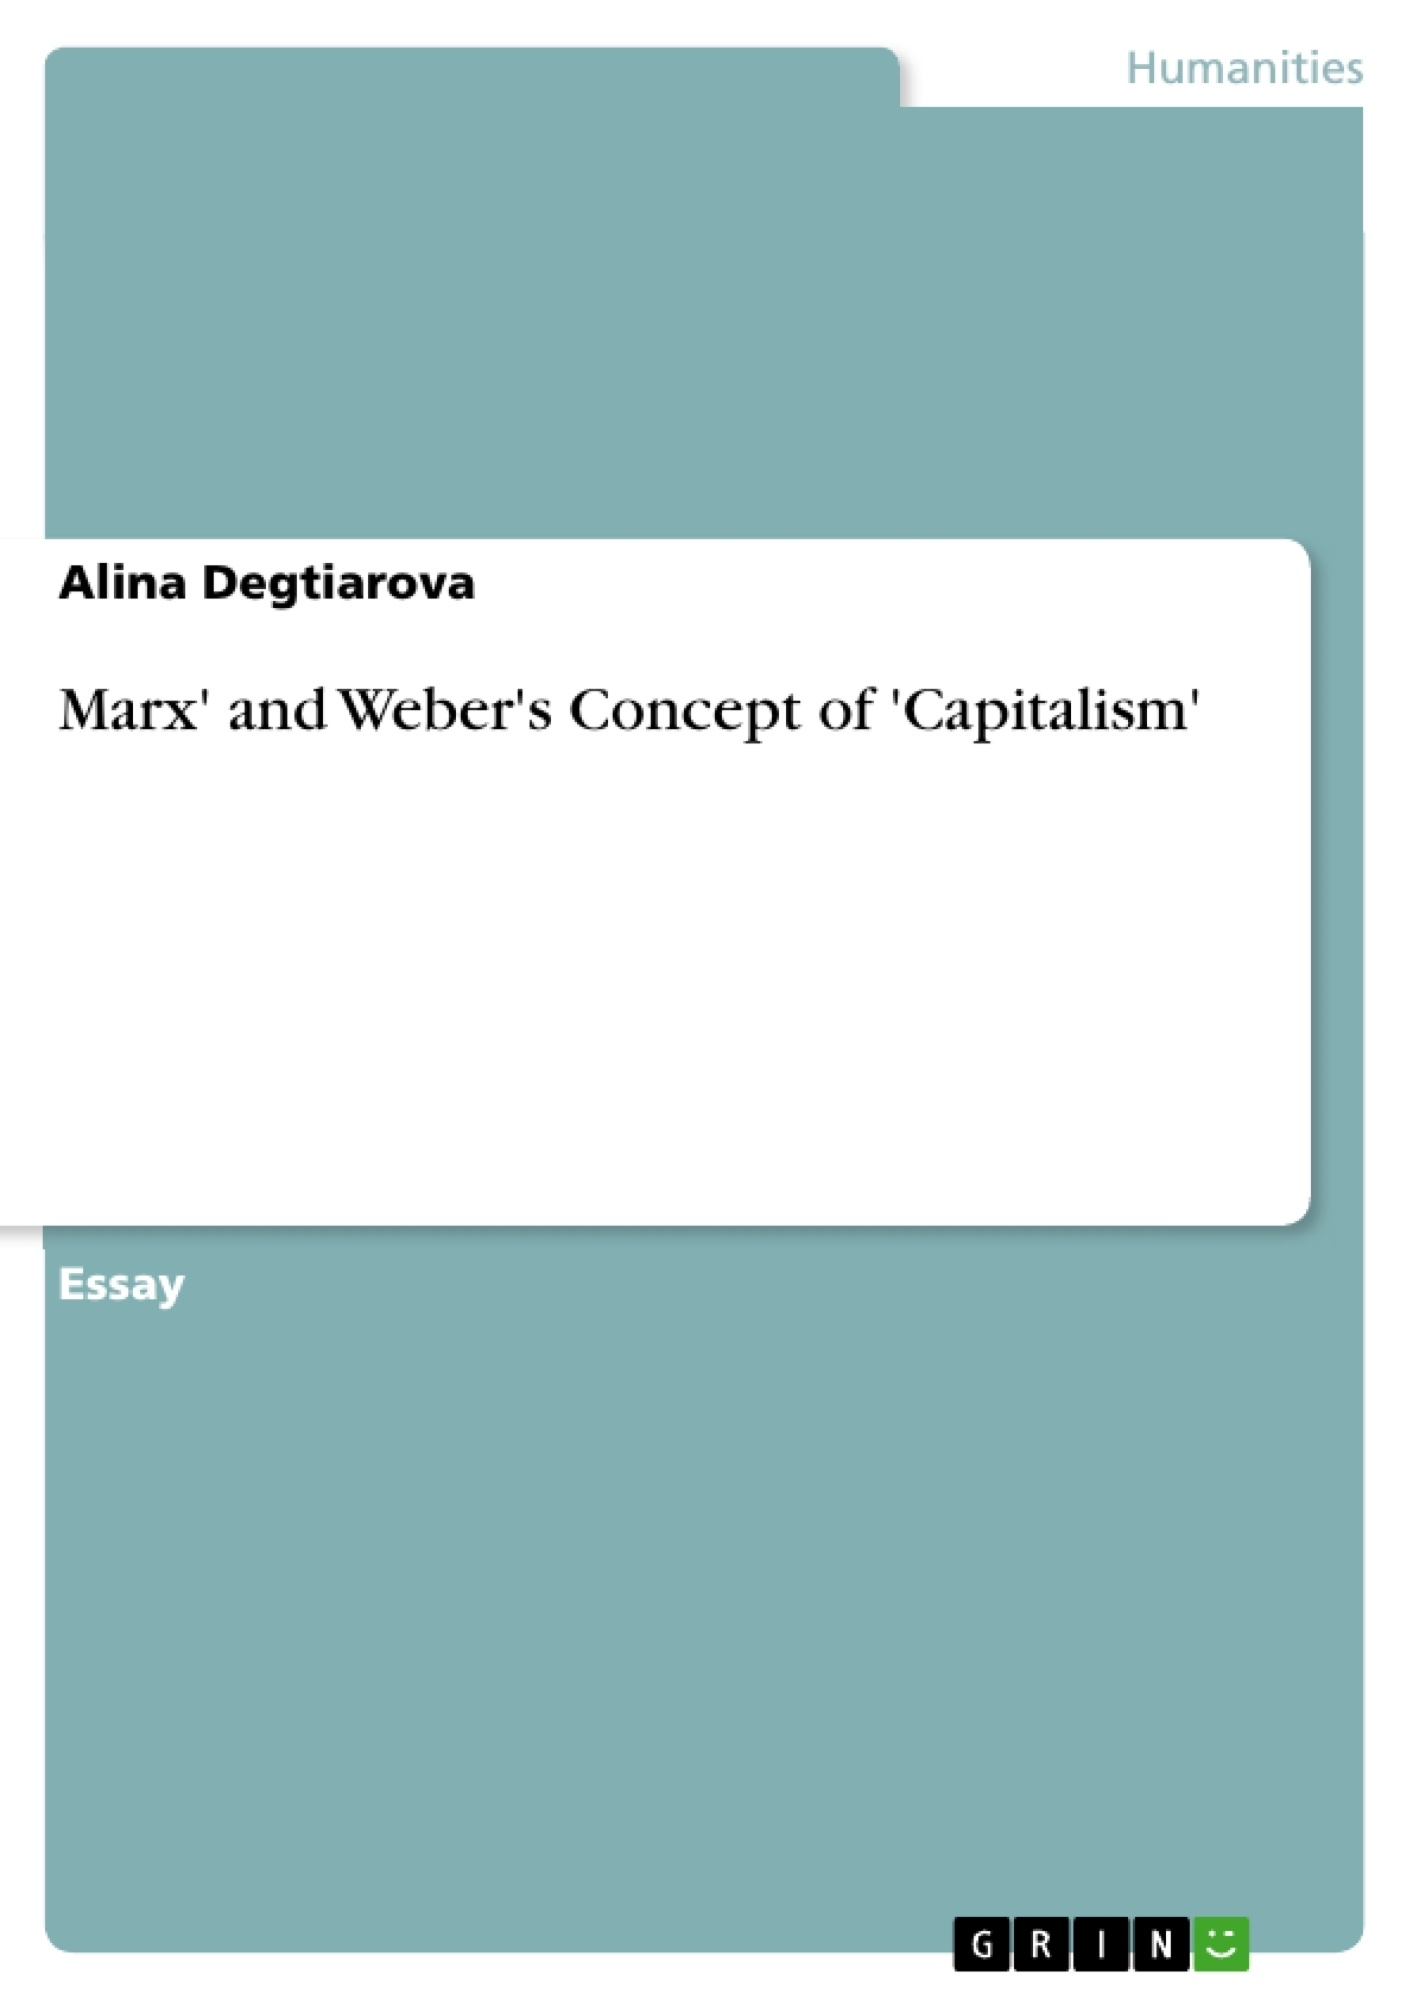 marx and weber essay Comparison between karl marx, and max weber introduction this paper provides a comparison between the ideas developed by karl marx and max weber on social development of the society.